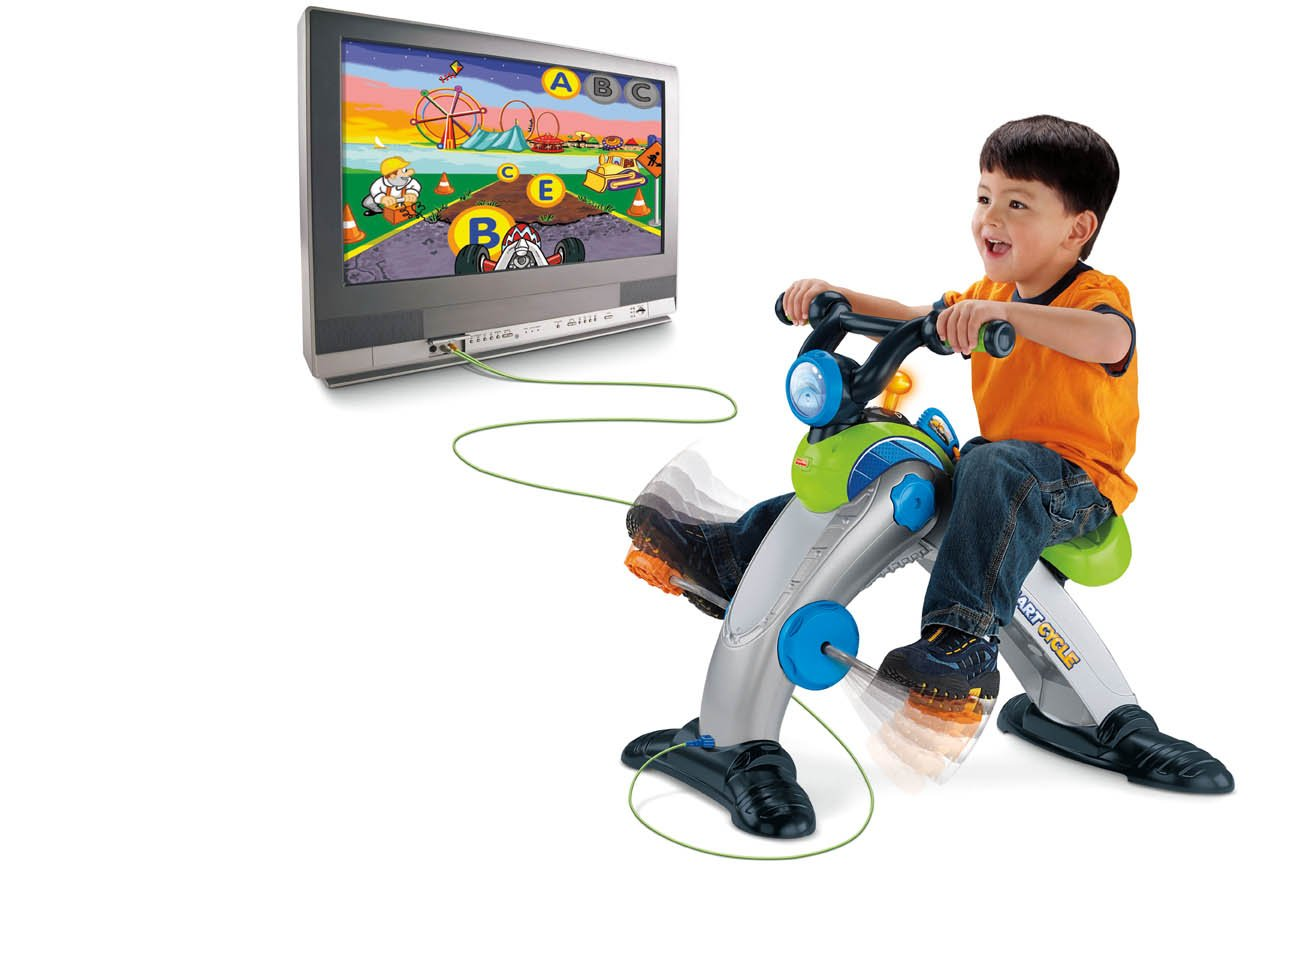 For Toddlers & Big Kids: Fisher-Price SMART CYCLE Racer Physical Learning Arcade System